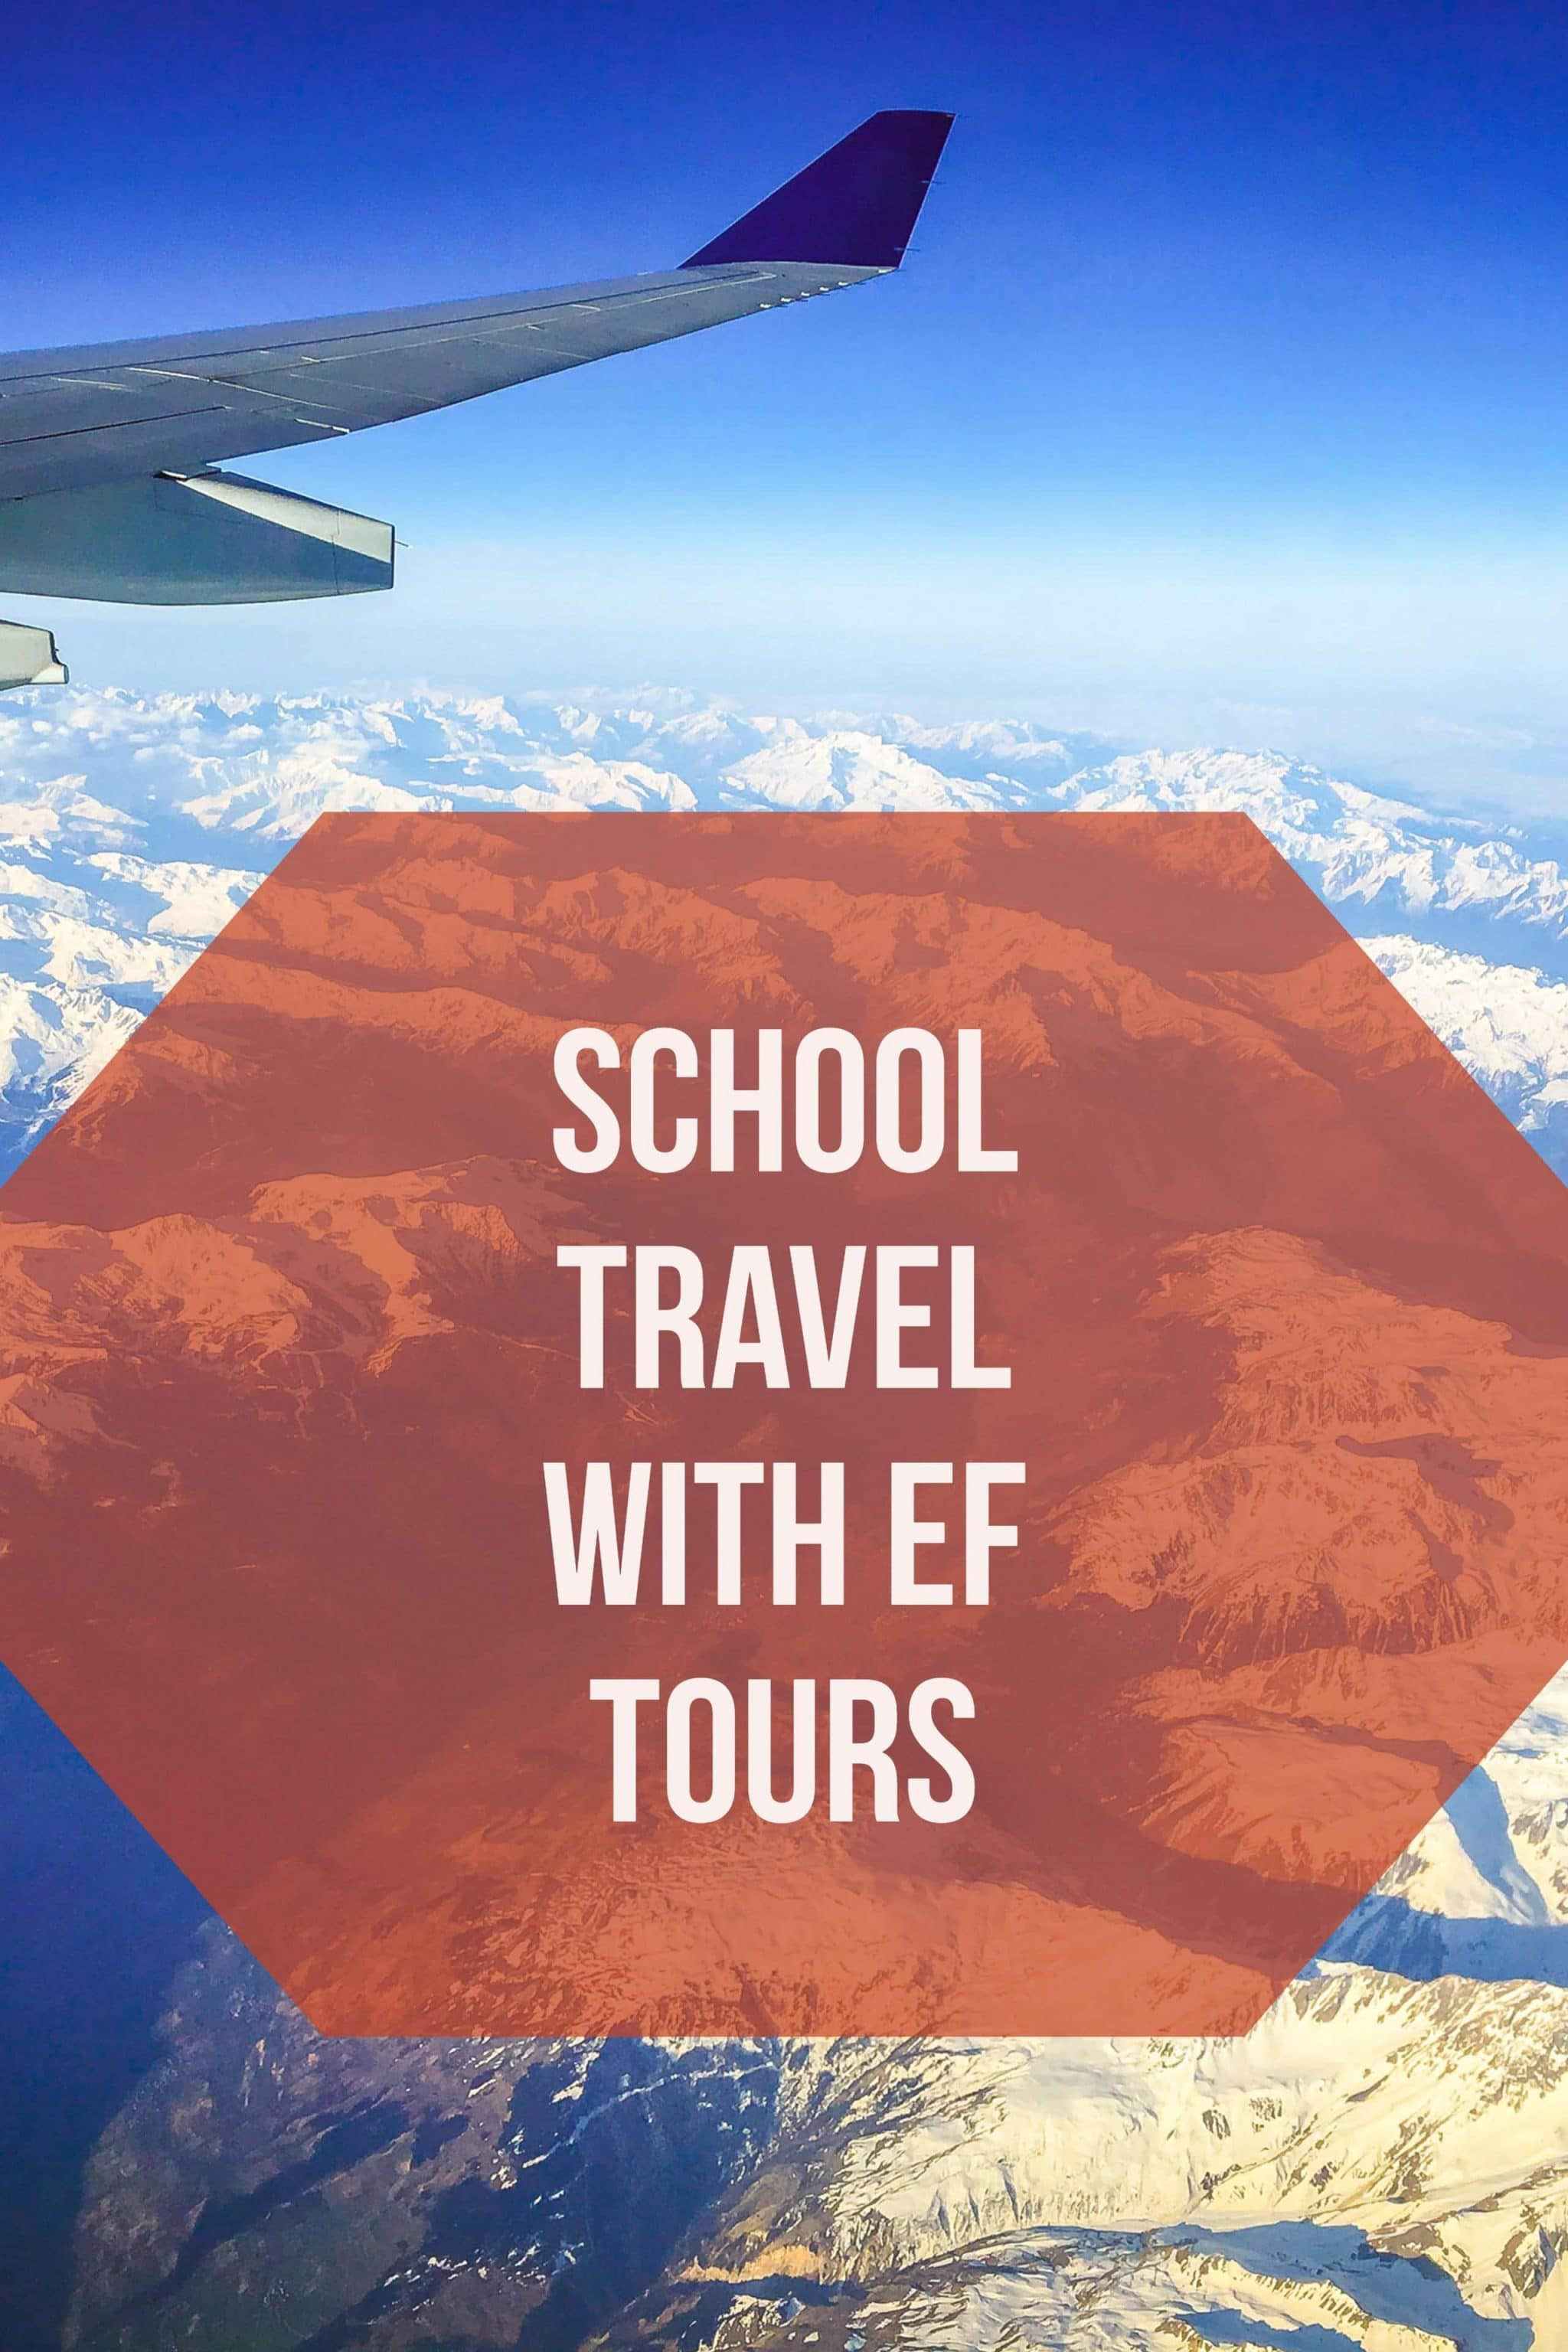 Our recent experience traveling with EF Tours on a school trip to Italy. Includes details on planning a trip and traveling with EF.